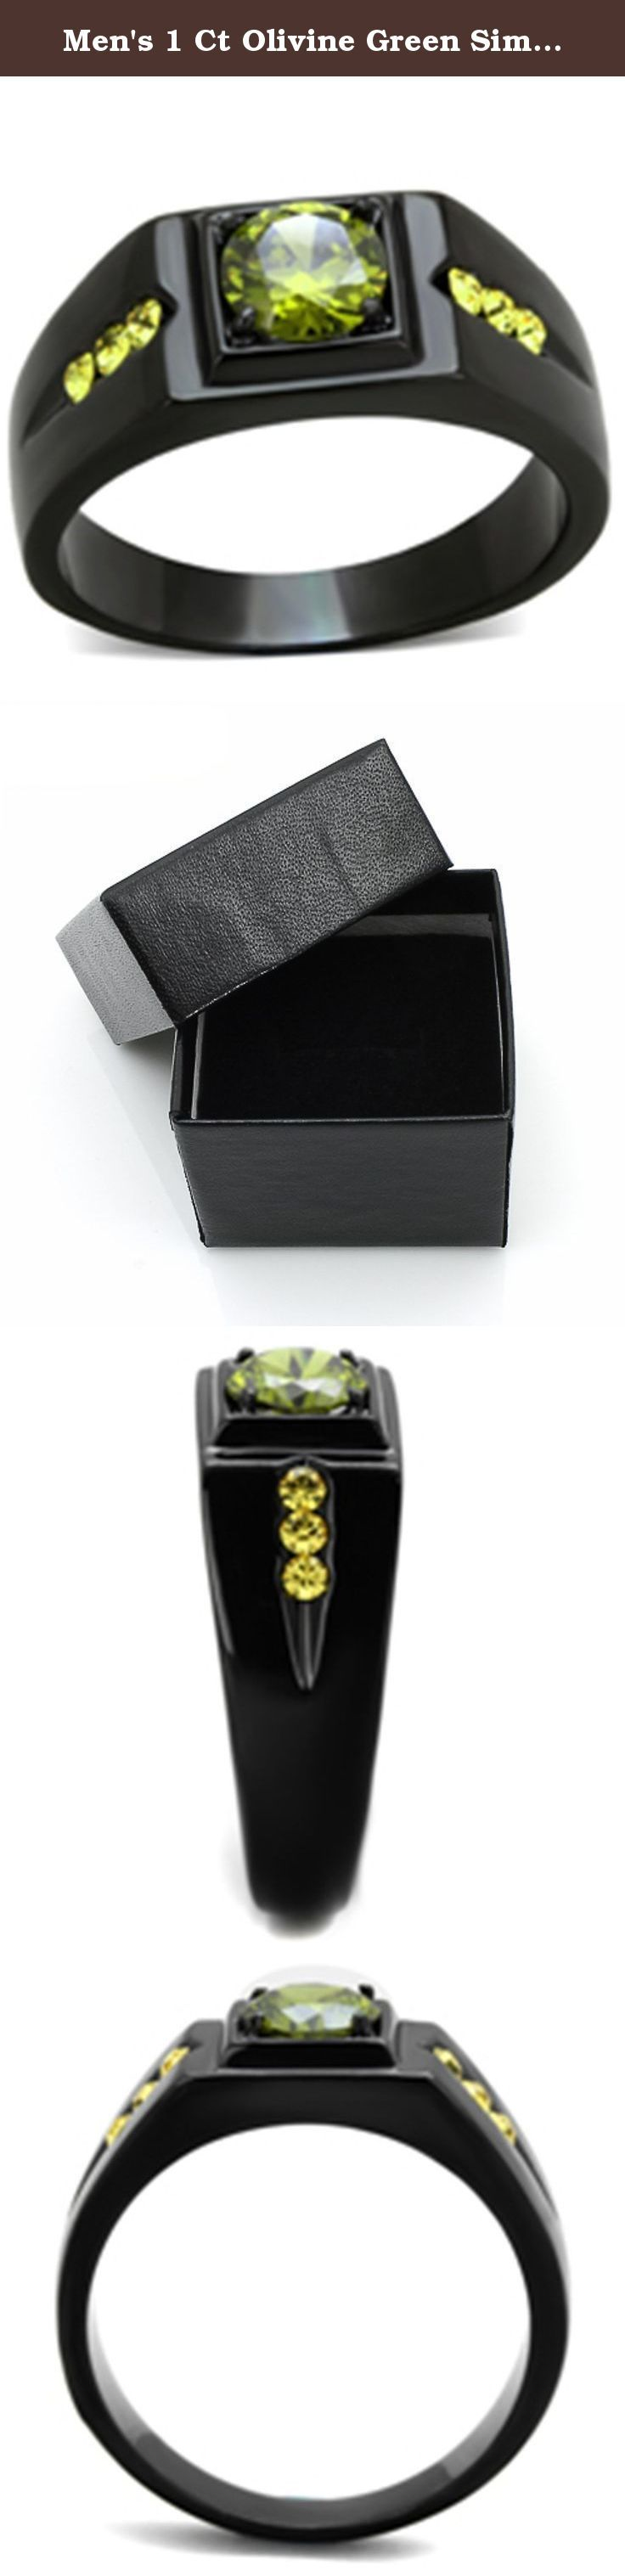 Men's 1 Ct Olivine Green Simulated Diamond Stainless Steel Black Ion Plated Ring Size 11. Men's 1 Ct Olivine Green Simulated Diamond Stainless Steel Black Ion Plated Ring Men's AAA Grade Simulated Diamond Ring. Features a .84 Ct (6mm) Olivine green round brilliant cut center stone in a prong setting, accented by 6 (2mm) round brilliant cut stones in a channel setting. Total carat weight is 1.02 diamond equivalent. Top quality stones display enriched clarity just like real diamond…